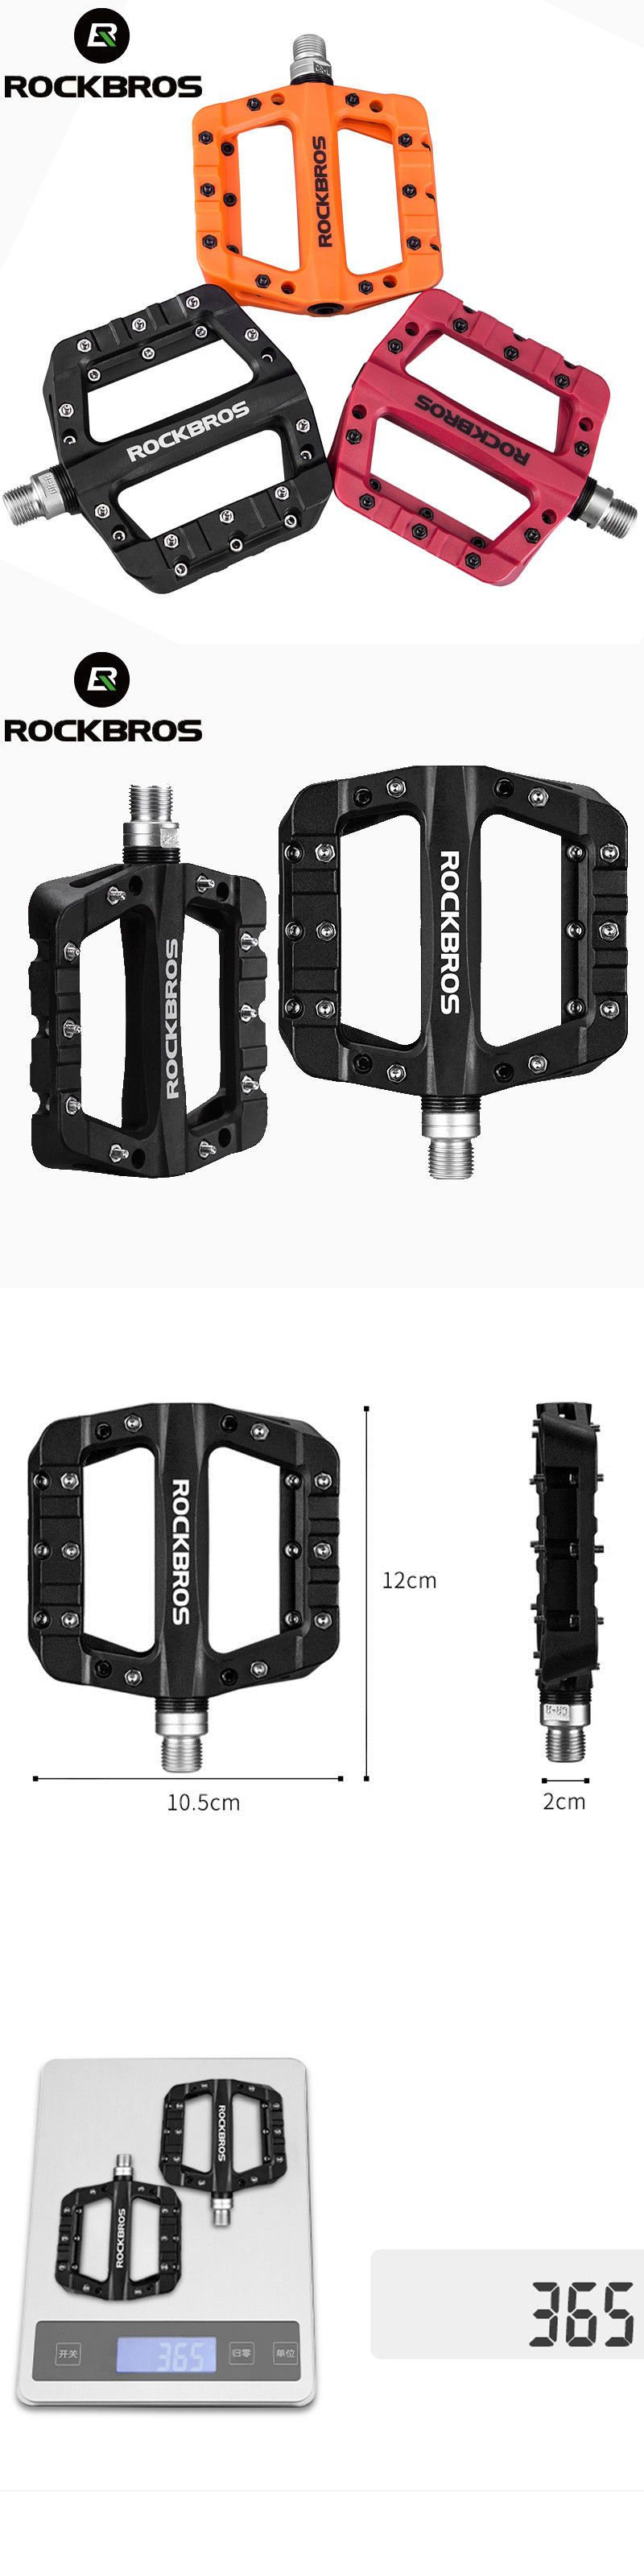 RockBros Mountain Bike Bicycle Bearing Flat Pedals Wide Nylon Pedals a Pair